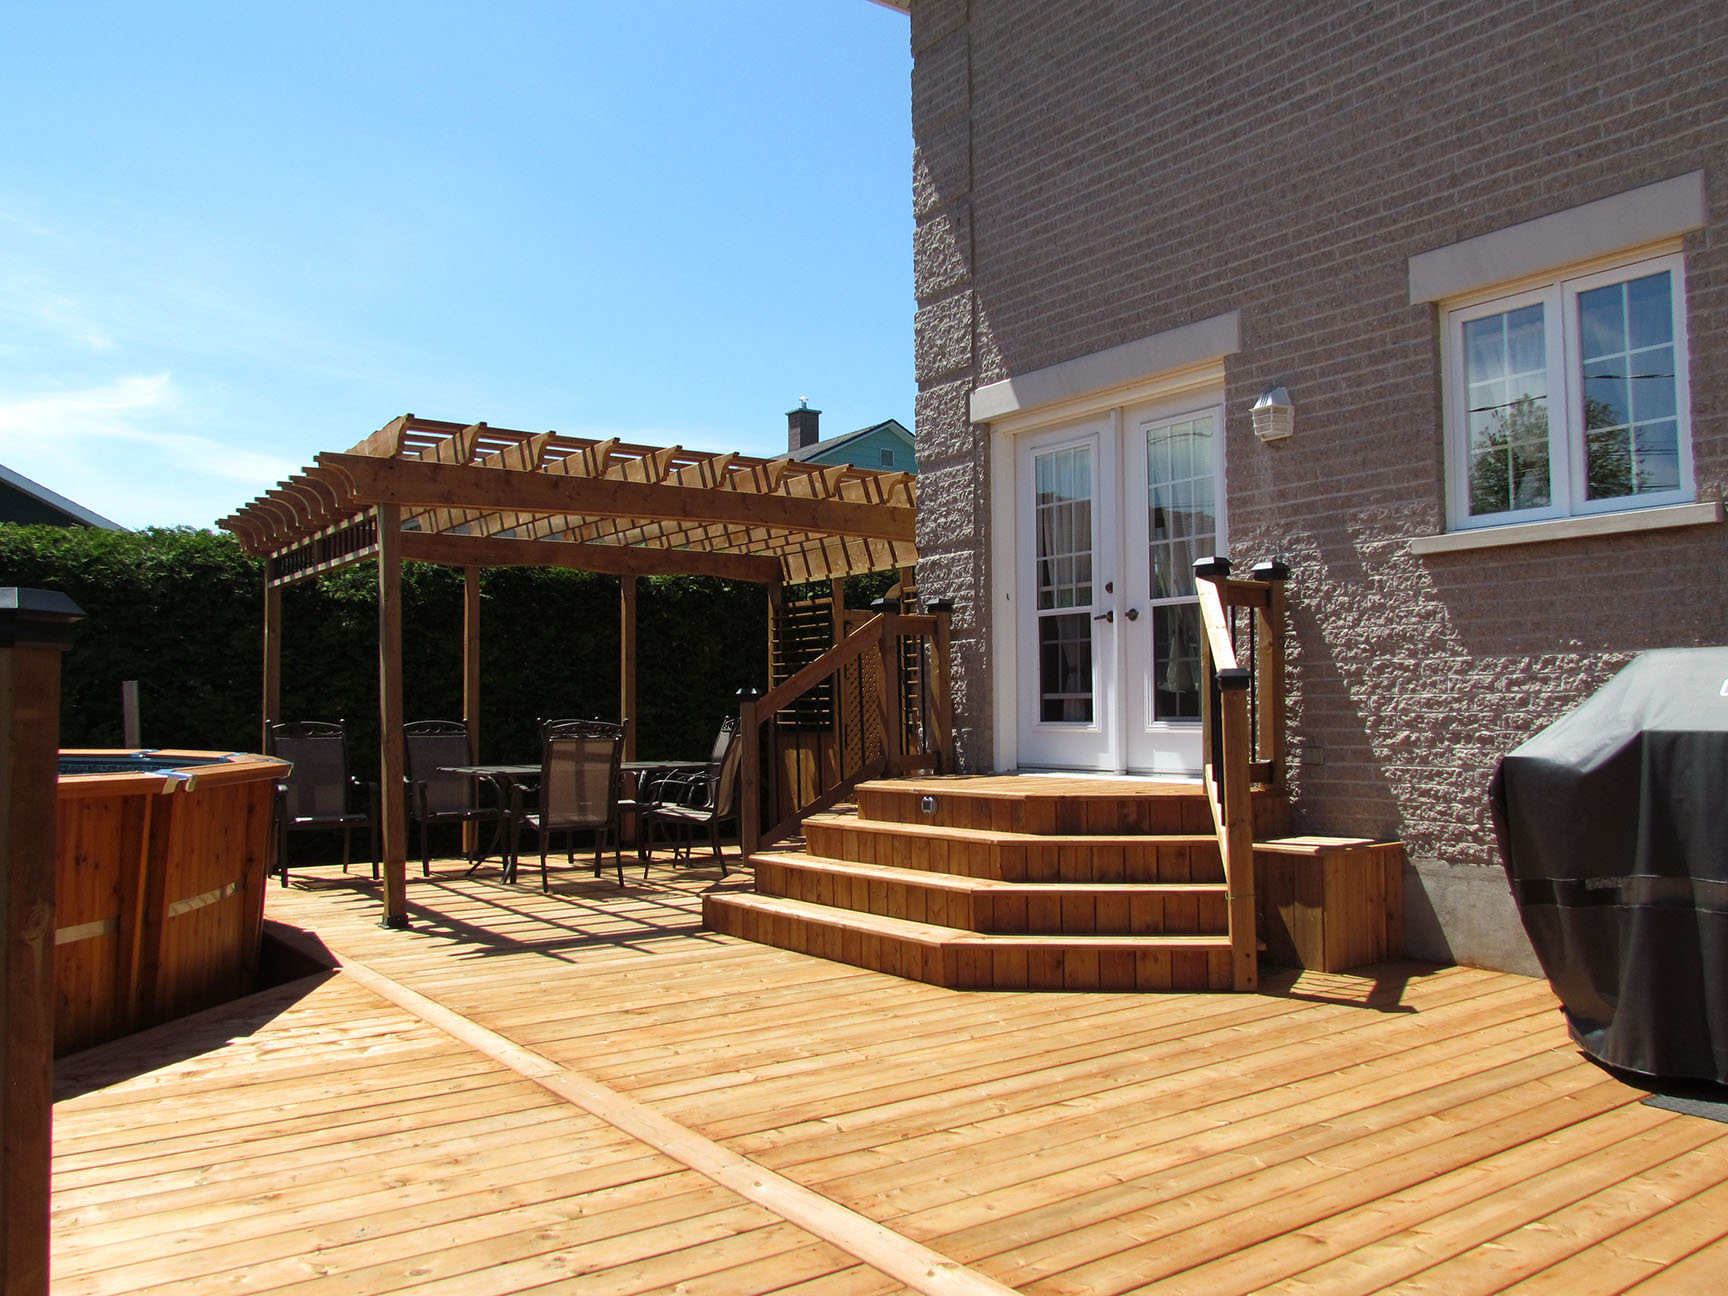 Plan De Patio Exterieur En Bois Of Le Bois Trait Brun Pour Un Patio D 39 Aspect Naturel D Conome